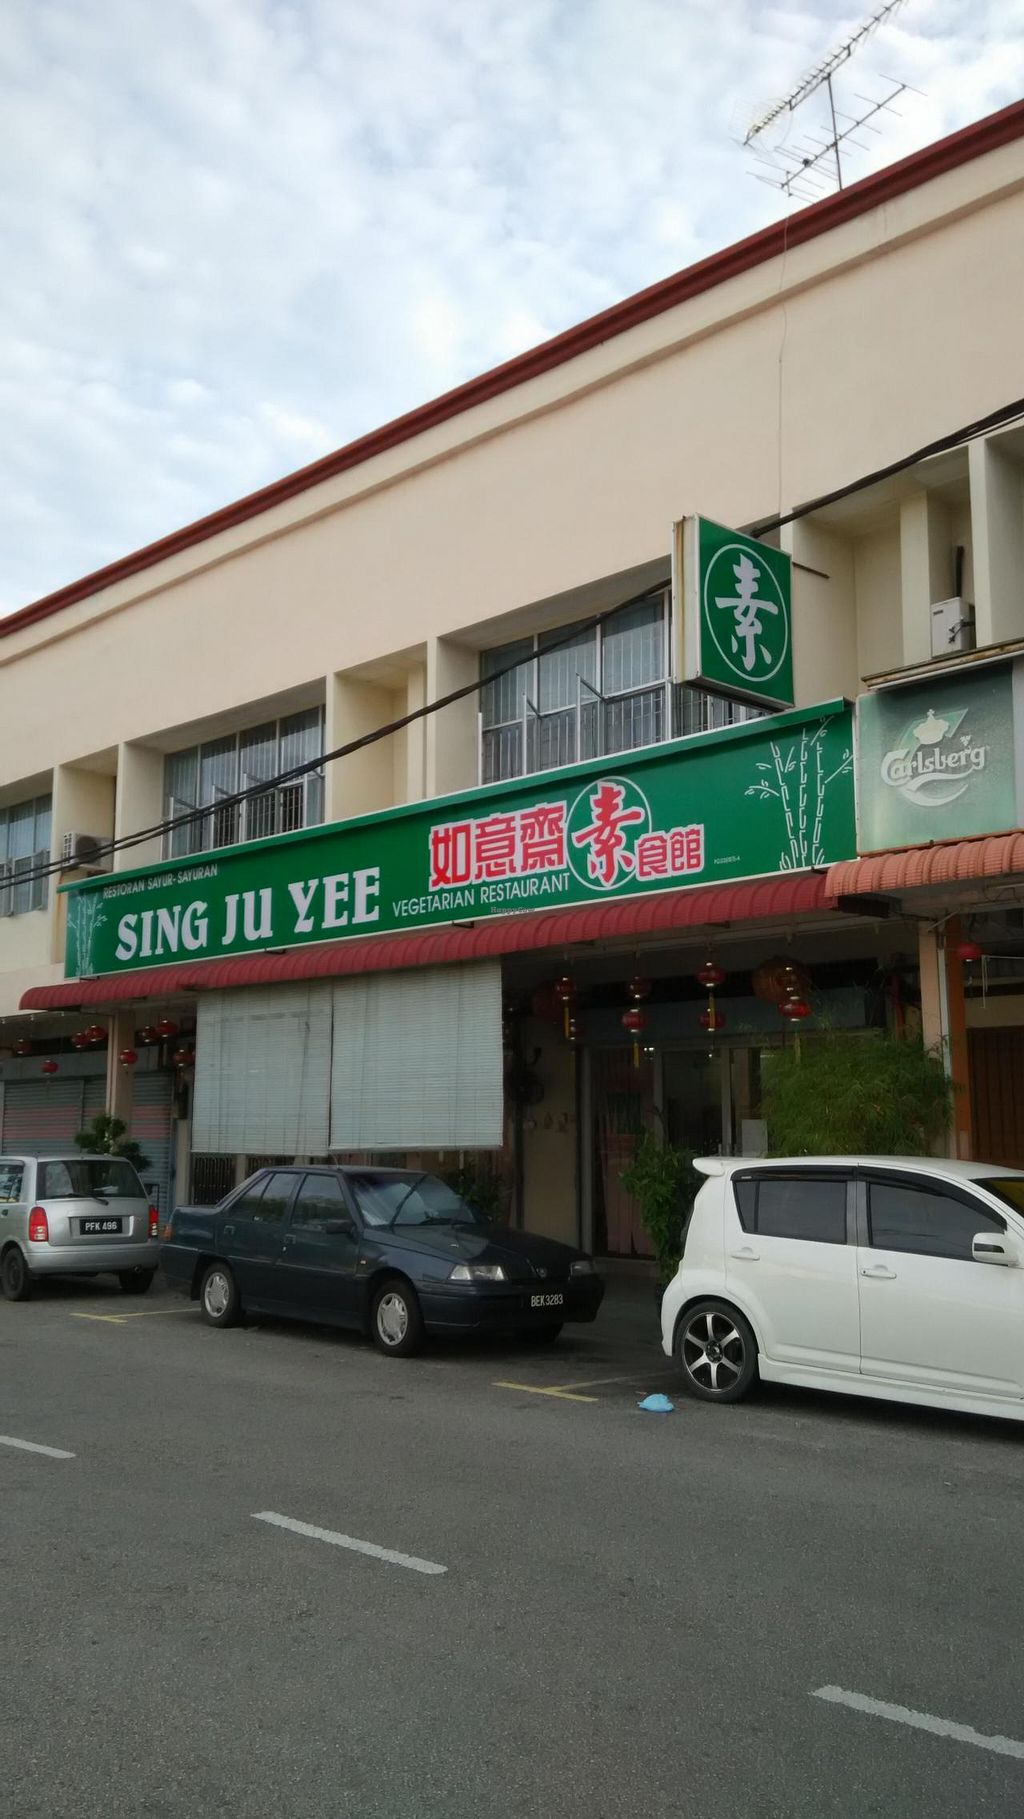 """Photo of Sing Ju Yee Vegetarian Restaurant  by <a href=""""/members/profile/singlong"""">singlong</a> <br/>Ju Yee  <br/> June 14, 2015  - <a href='/contact/abuse/image/59433/105987'>Report</a>"""